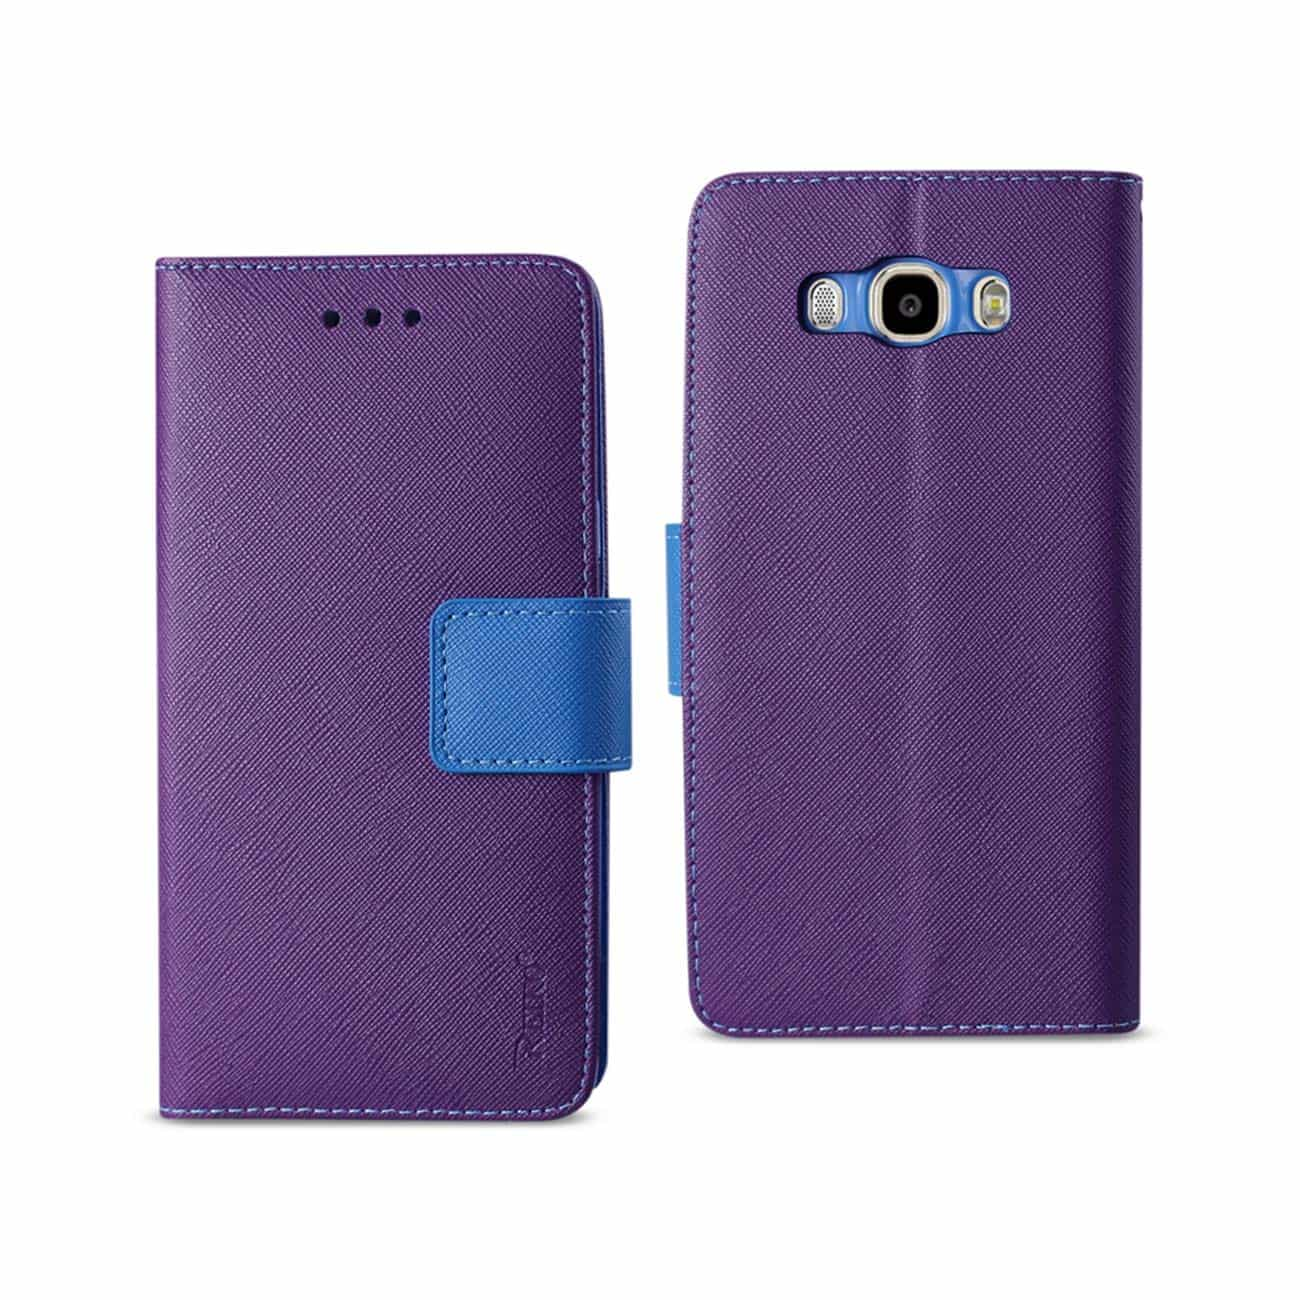 SAMSUNG GALAXY J7 (2016) 3-IN-1 WALLET CASE IN PURPLE